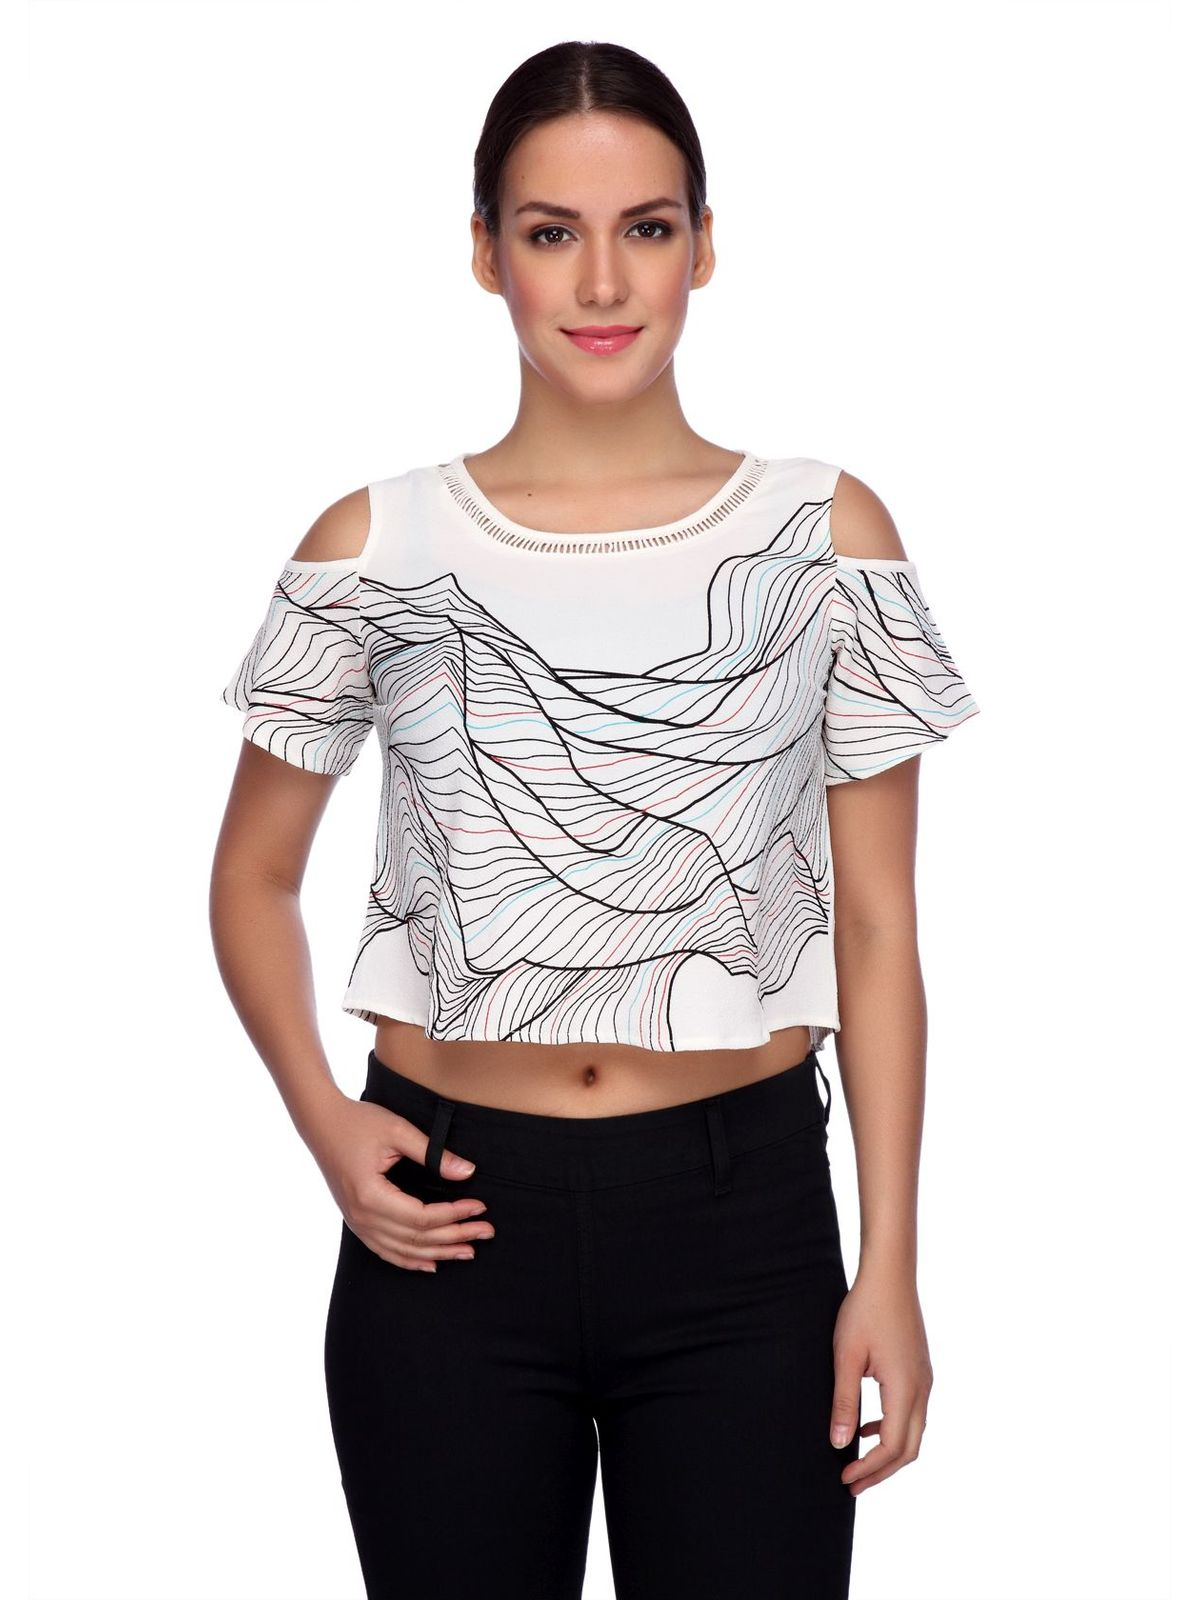 BACK BUTTON CROP TOP